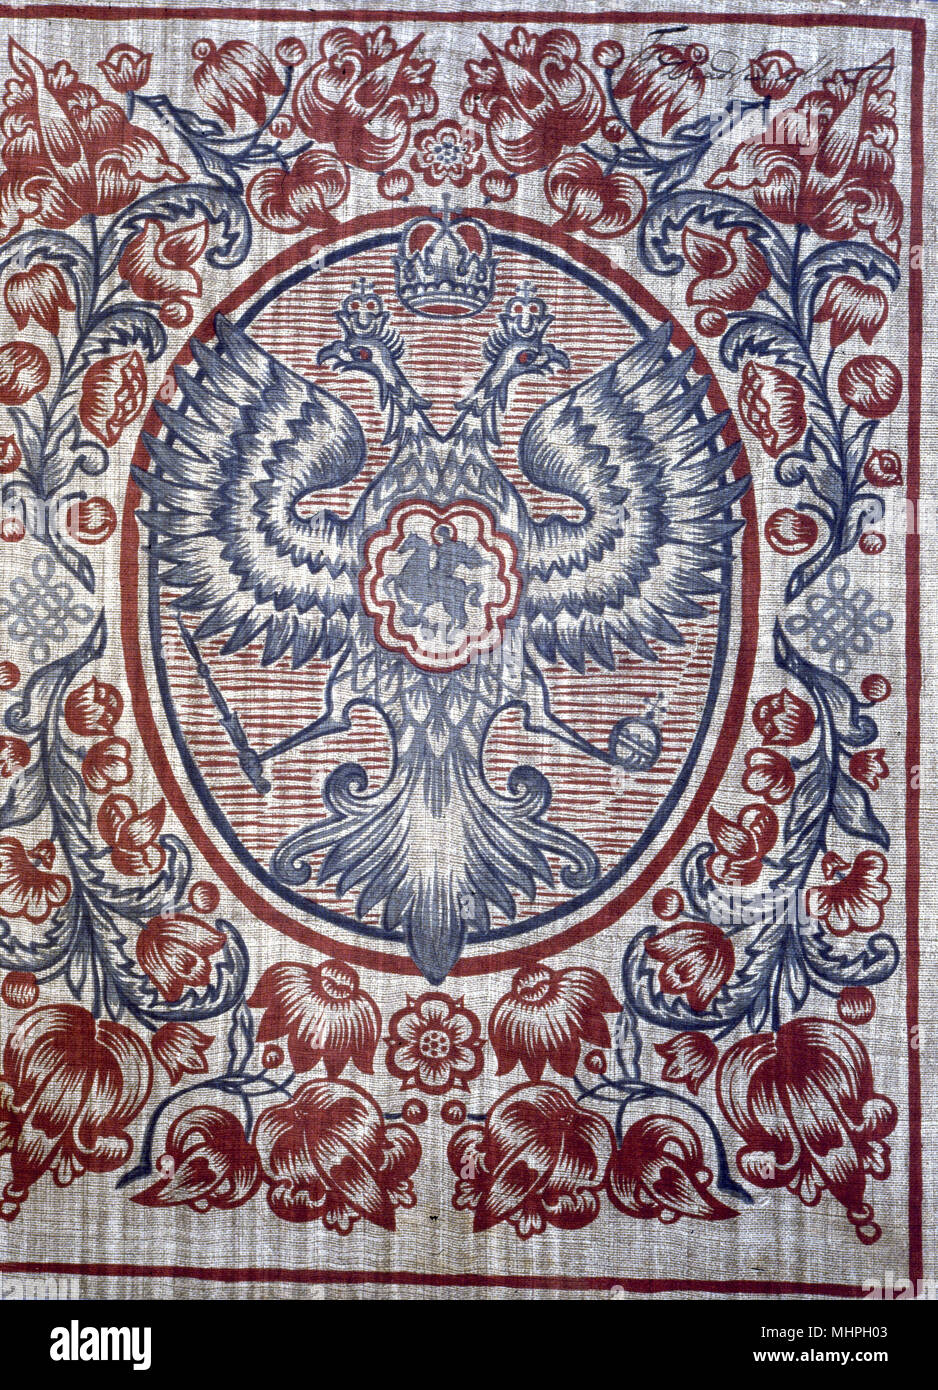 The Imperial Russian coat of arms (Romanov family) in red, blue and